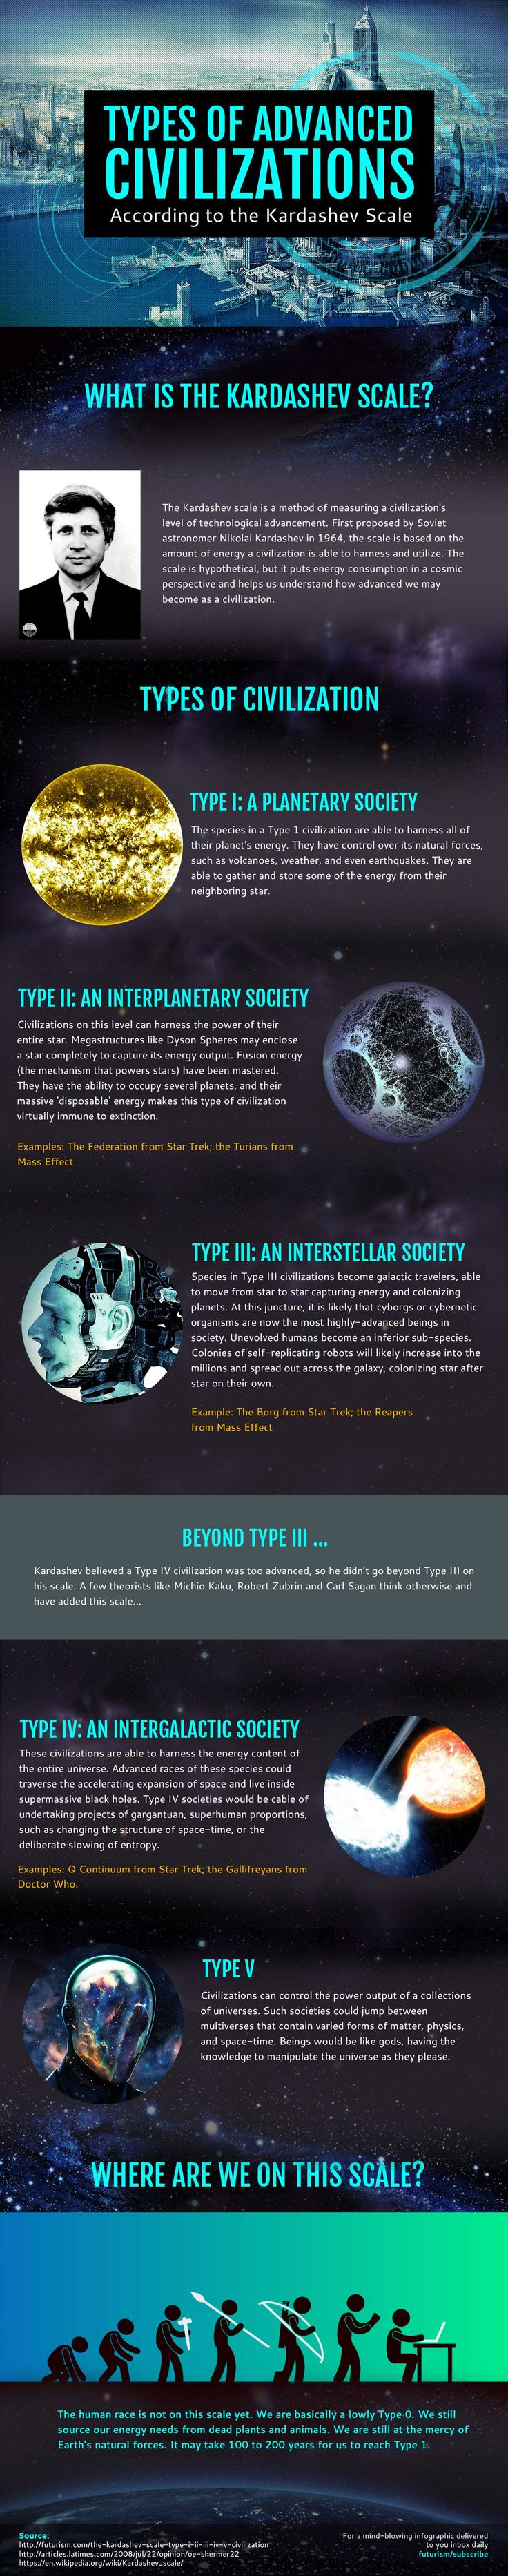 KardashevScale_v8 This scale puts technological progress and energy consumption into perspective, and it helps us understand how advanced our civilization is.